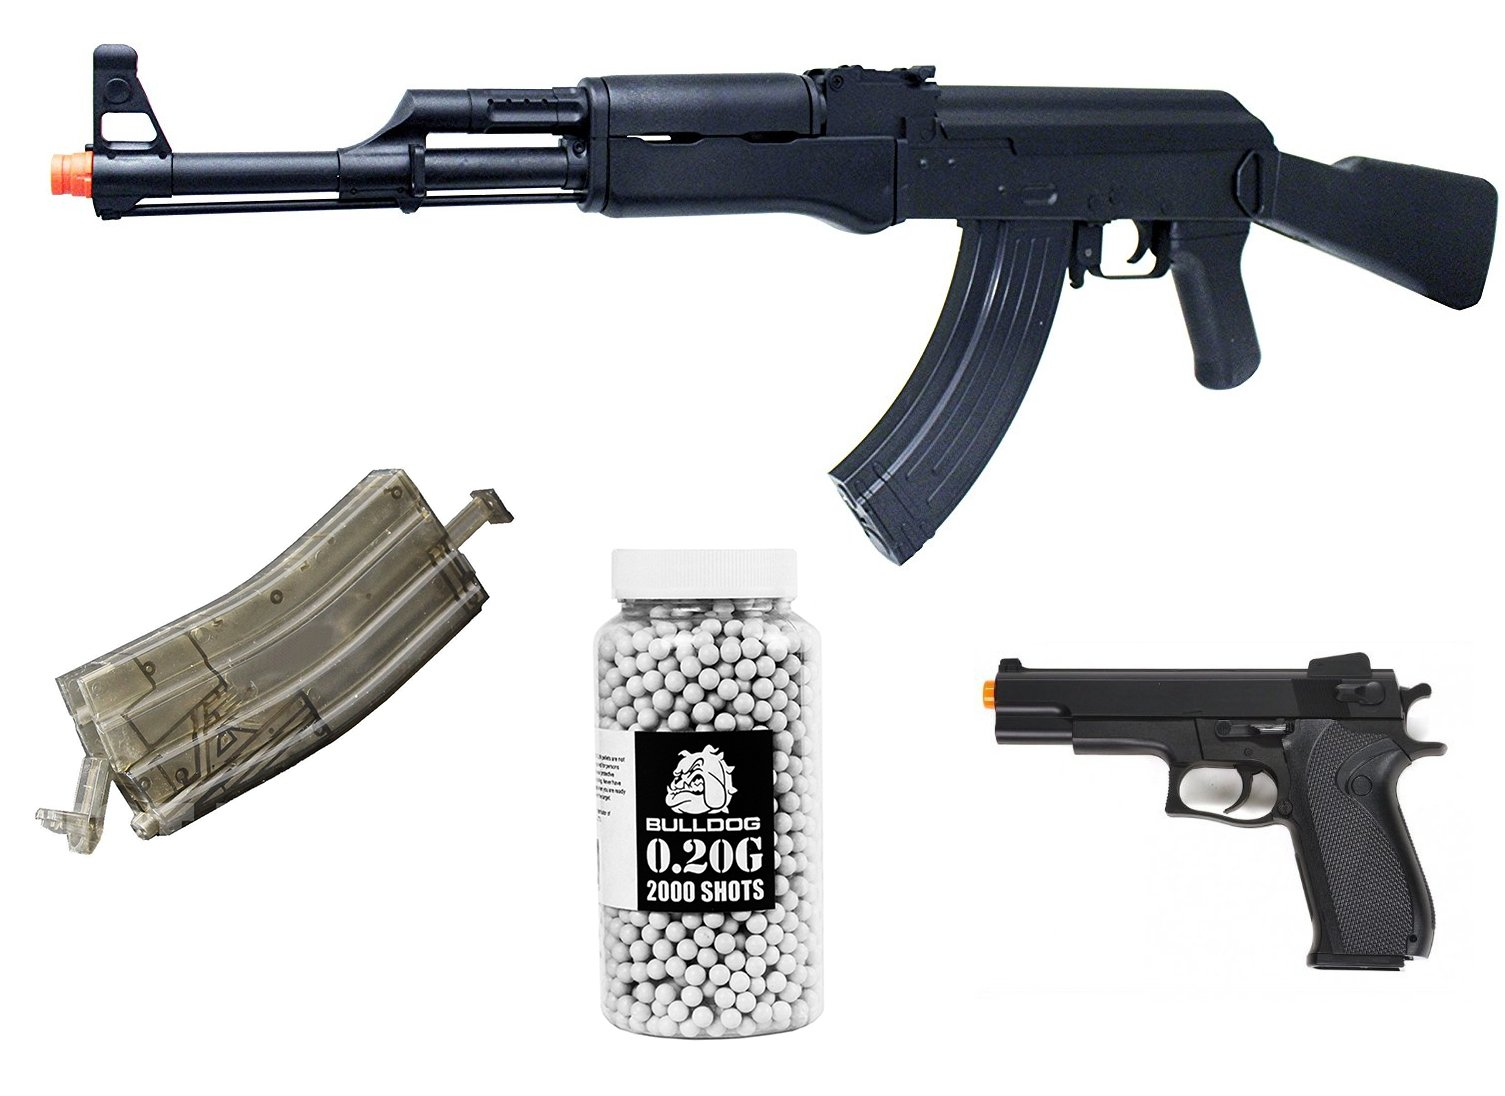 Airsoft Bundle- SRC AK47 High Power Pro Electric Rifle, Airsoft 500 Round BB Hi Capacity Speed loader, Airsoft 1911 Style Spring Pistol,Bulldog 0.20g 2000 Airsoft BB Pellets White by A&N